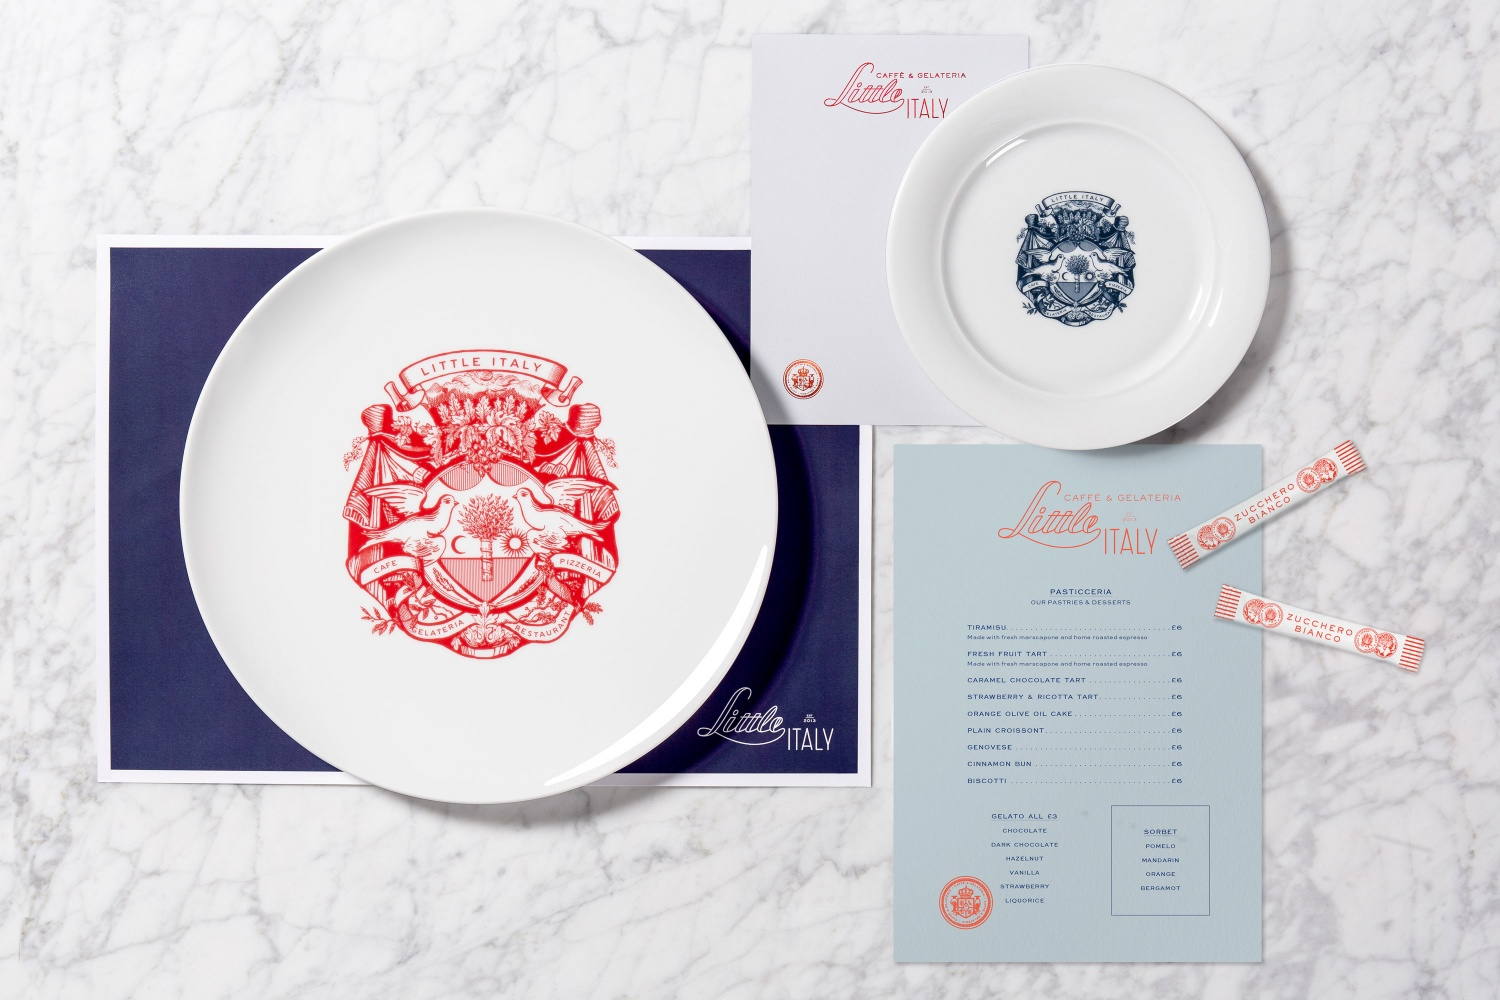 Brand identity by British studio Here Design for Amman-based restaurant Little Italy